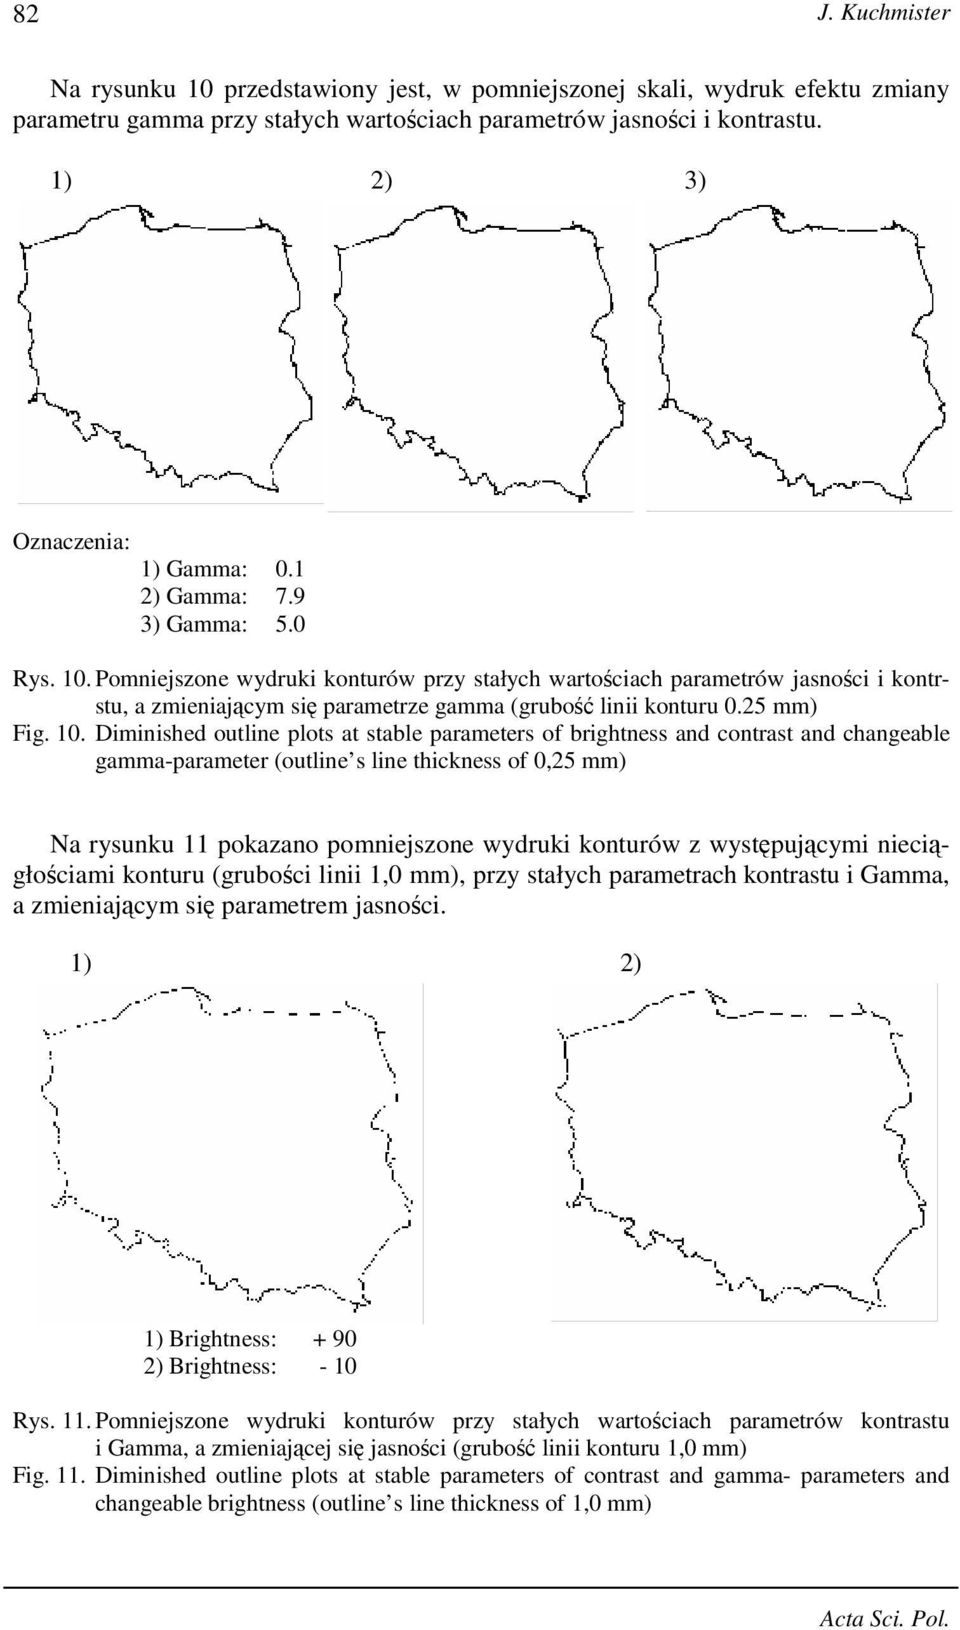 10. Diminished outline plots at stable parameters of brightness and contrast and changeable gamma-parameter (outline s line thickness of 0,25 mm) Na rysunku 11 pokazano pomniejszone wydruki konturów